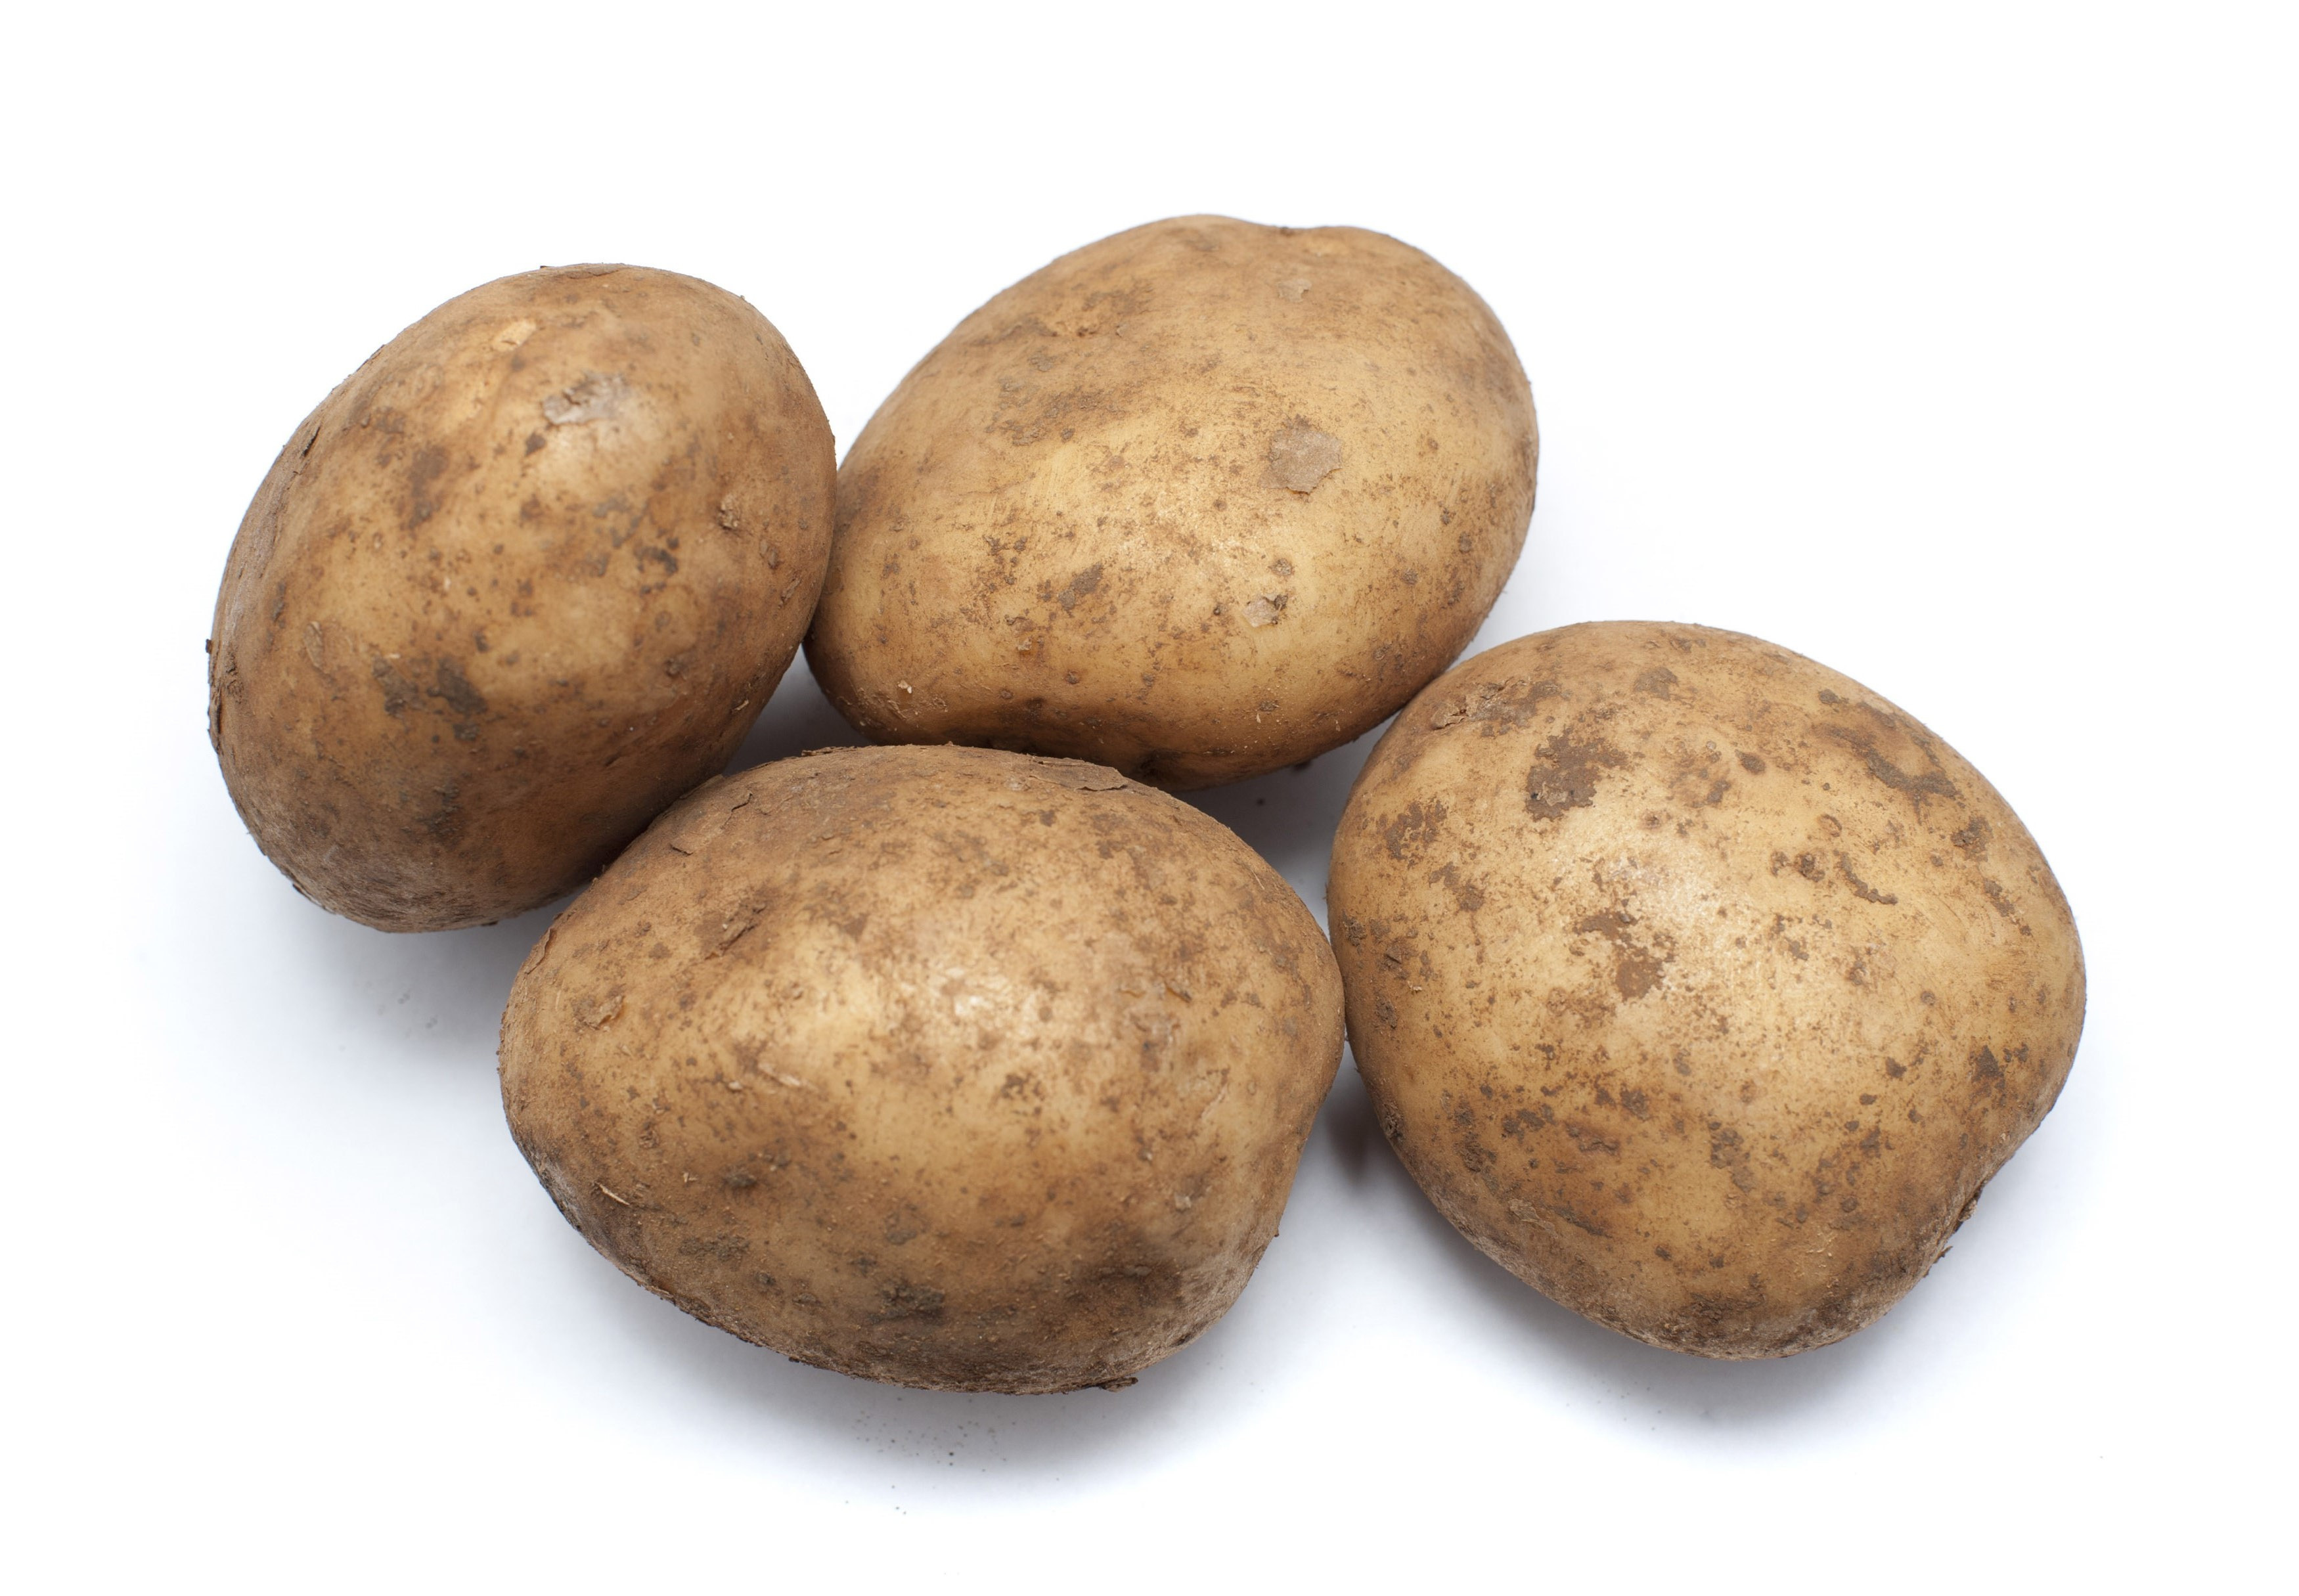 Potato A Vegetable  Fresh uncleaned potatoes Free Stock Image